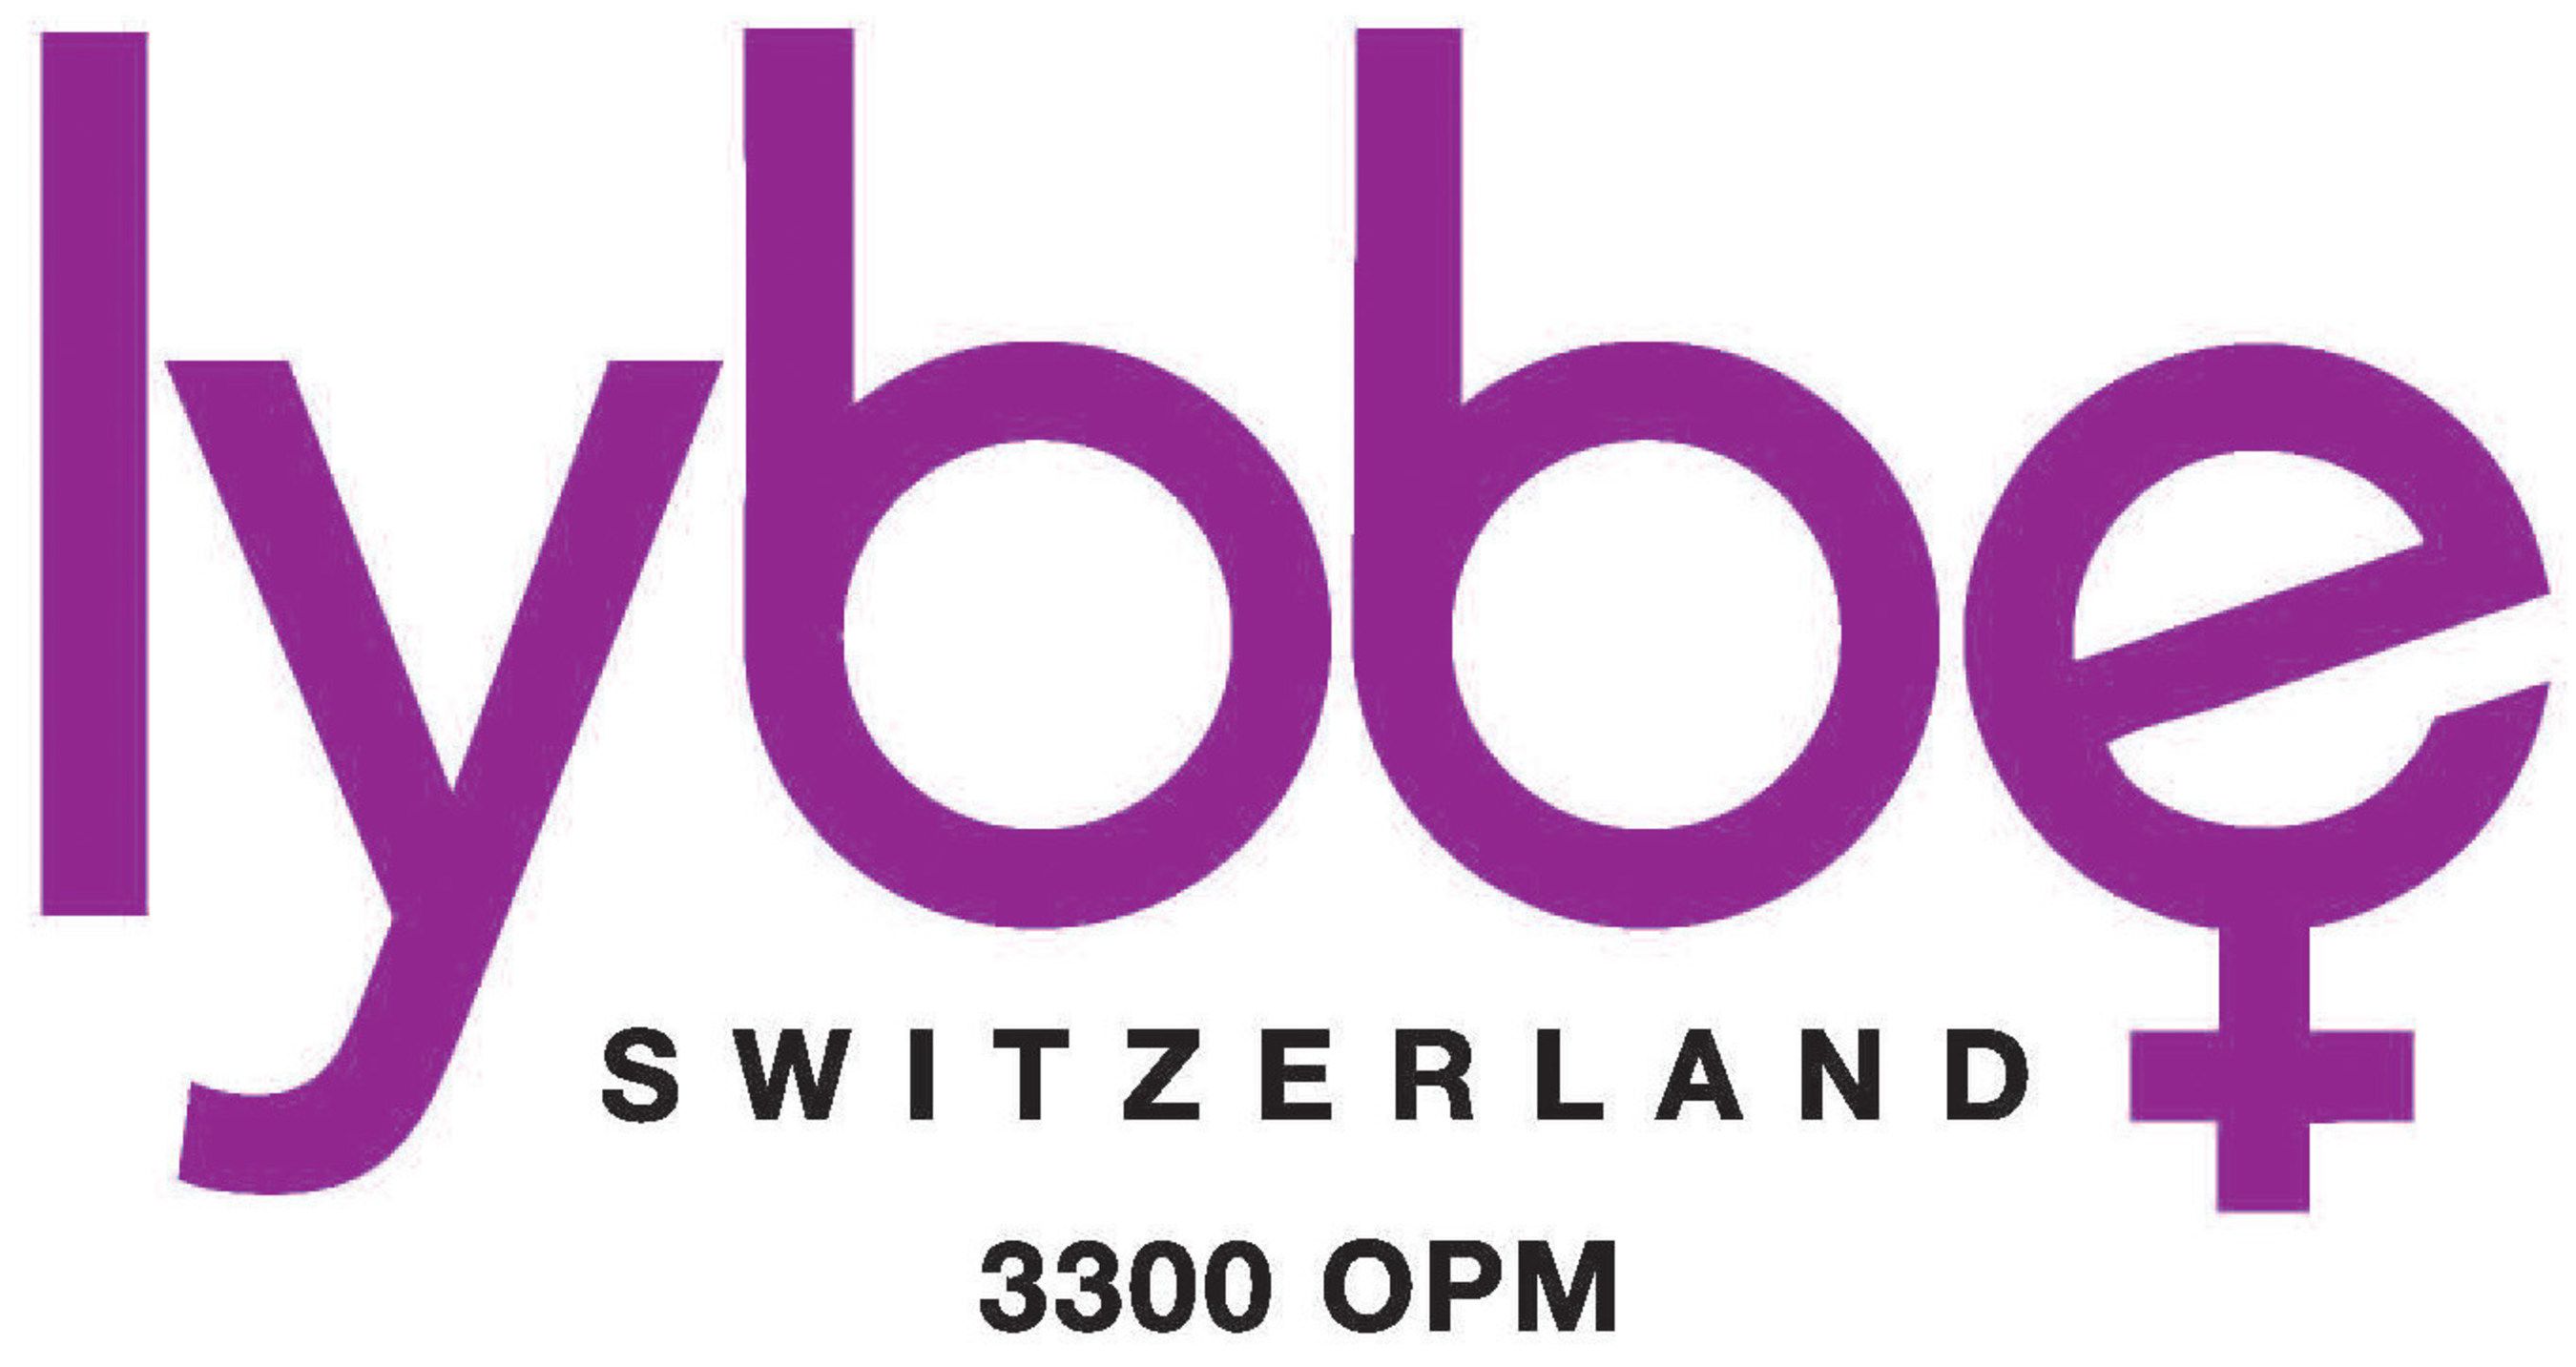 LYBBERATOR LLC introduces a new breakthrough technology and design for a stimulator to help women achieve a new level of orgasm. The device is named LYBBE (www.lybbe.com) and is design and tested in Switzerland. LYBBE used a rotational driven harmonic oscillating engine - not a vibrating motor - that runs at an amazing 3300 oscillations per minute (OPM). The device is AC powered for continuous, uninterrupted use. LYBBERATOR is making the device available through an Indiegogo campaign (http://igg.me/at/lybbe) starting April 27th 2015 and running for 60 days. They are appealing to the public to help raise $1.5MM.